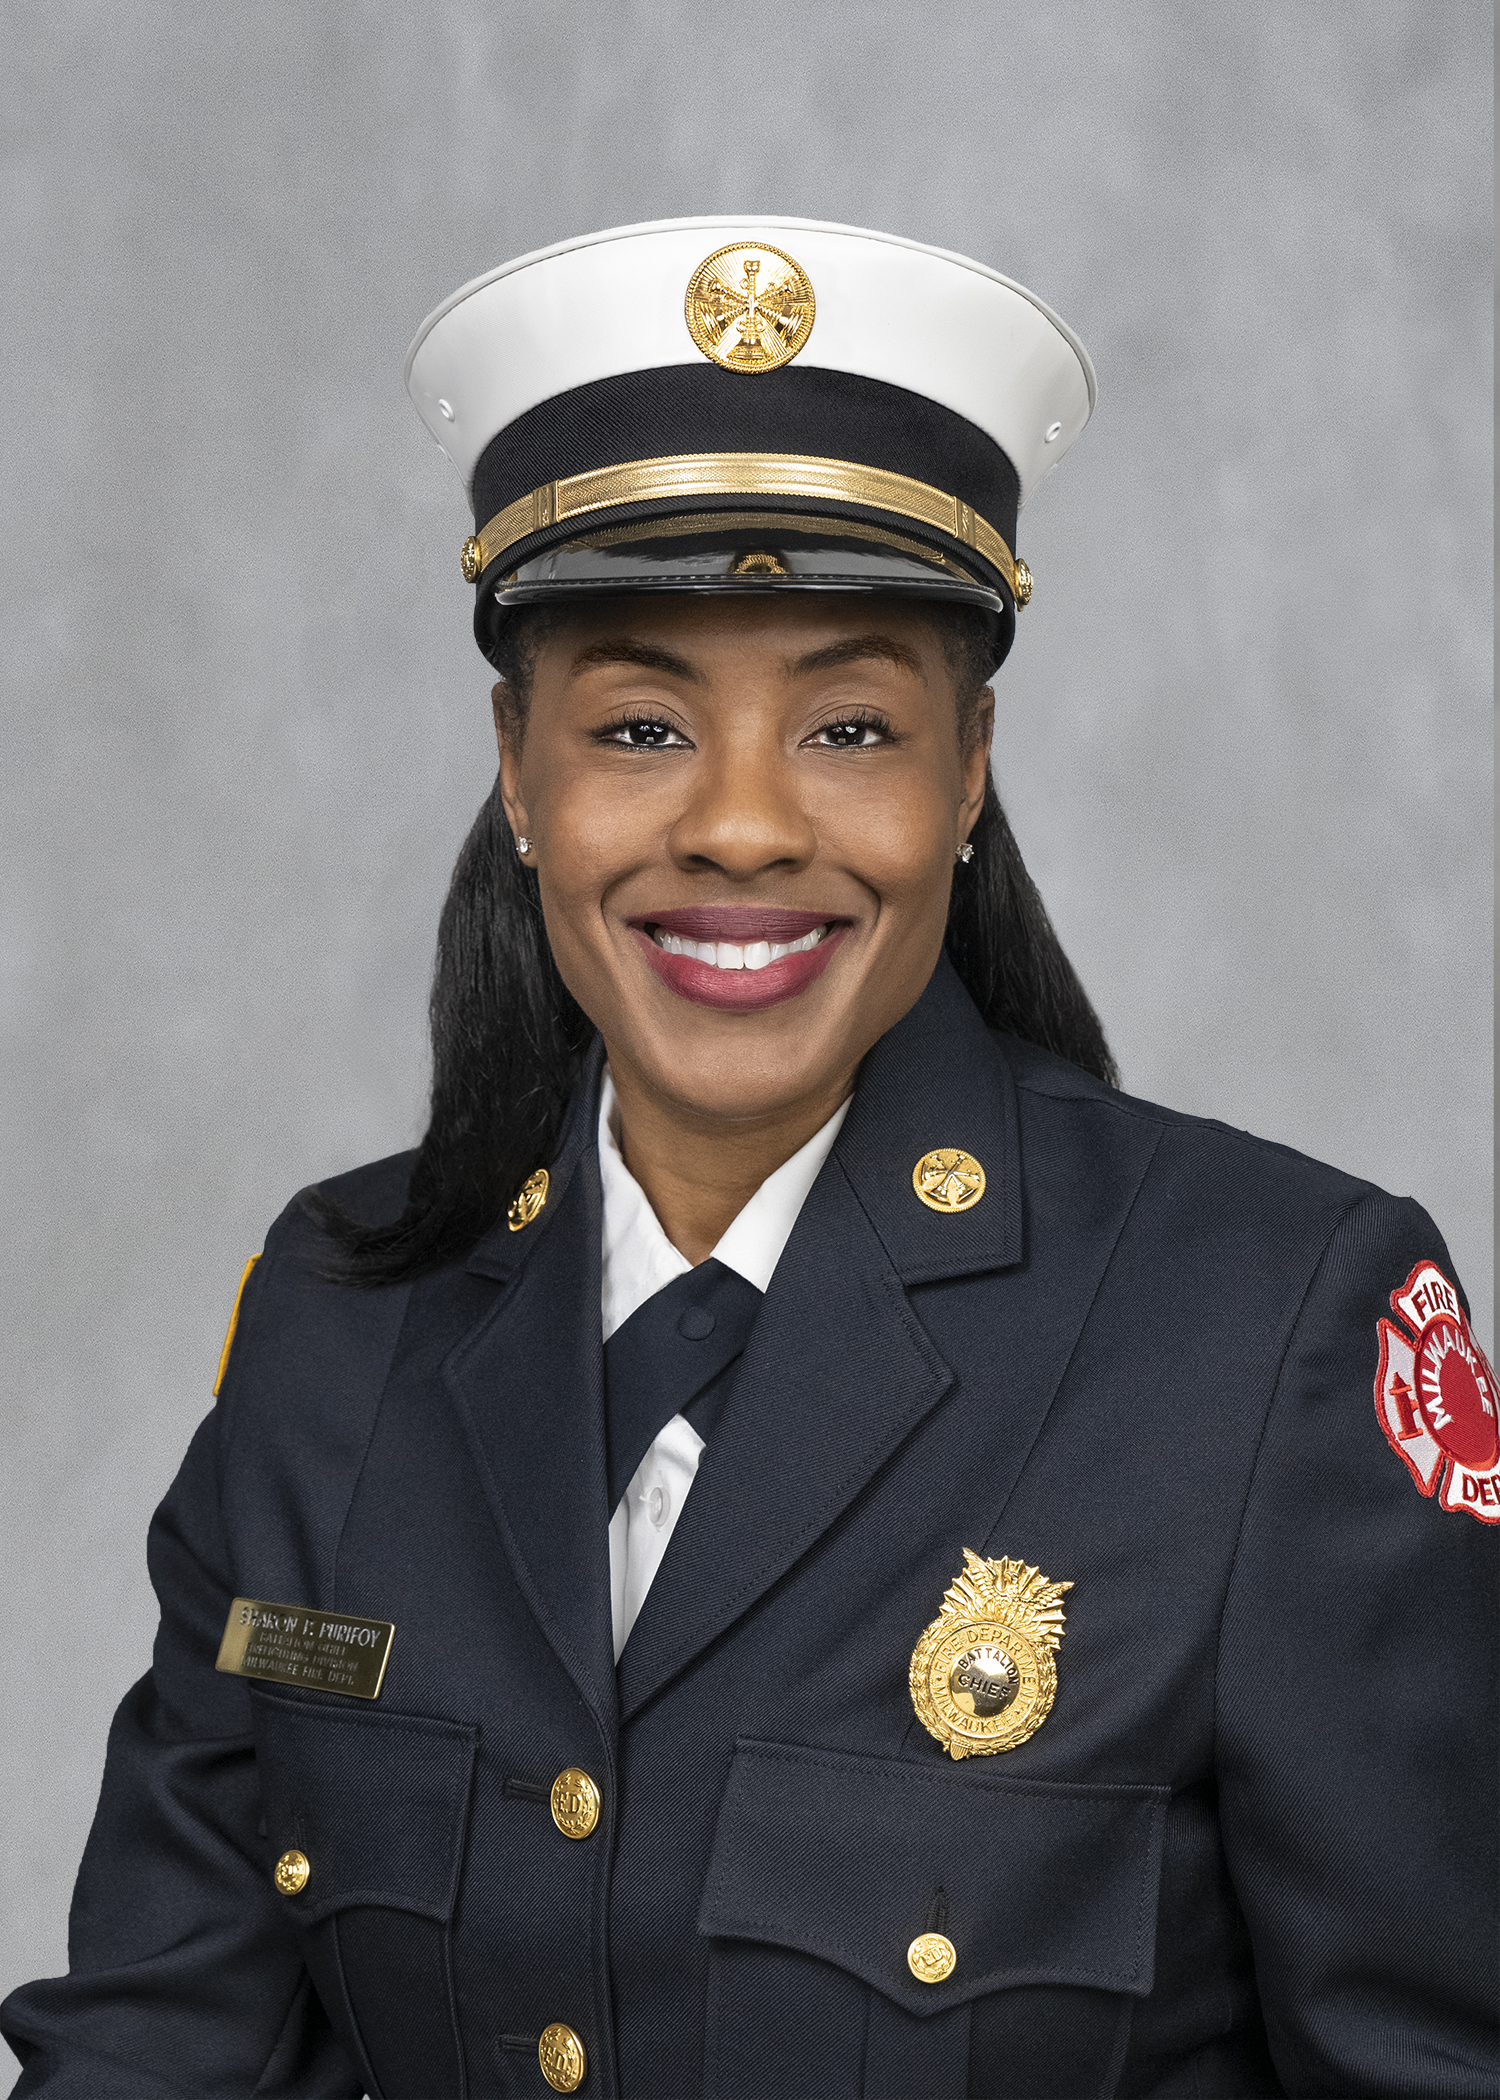 Sharon P. Purifoy. Photo from the Milwaukee Fire Department.